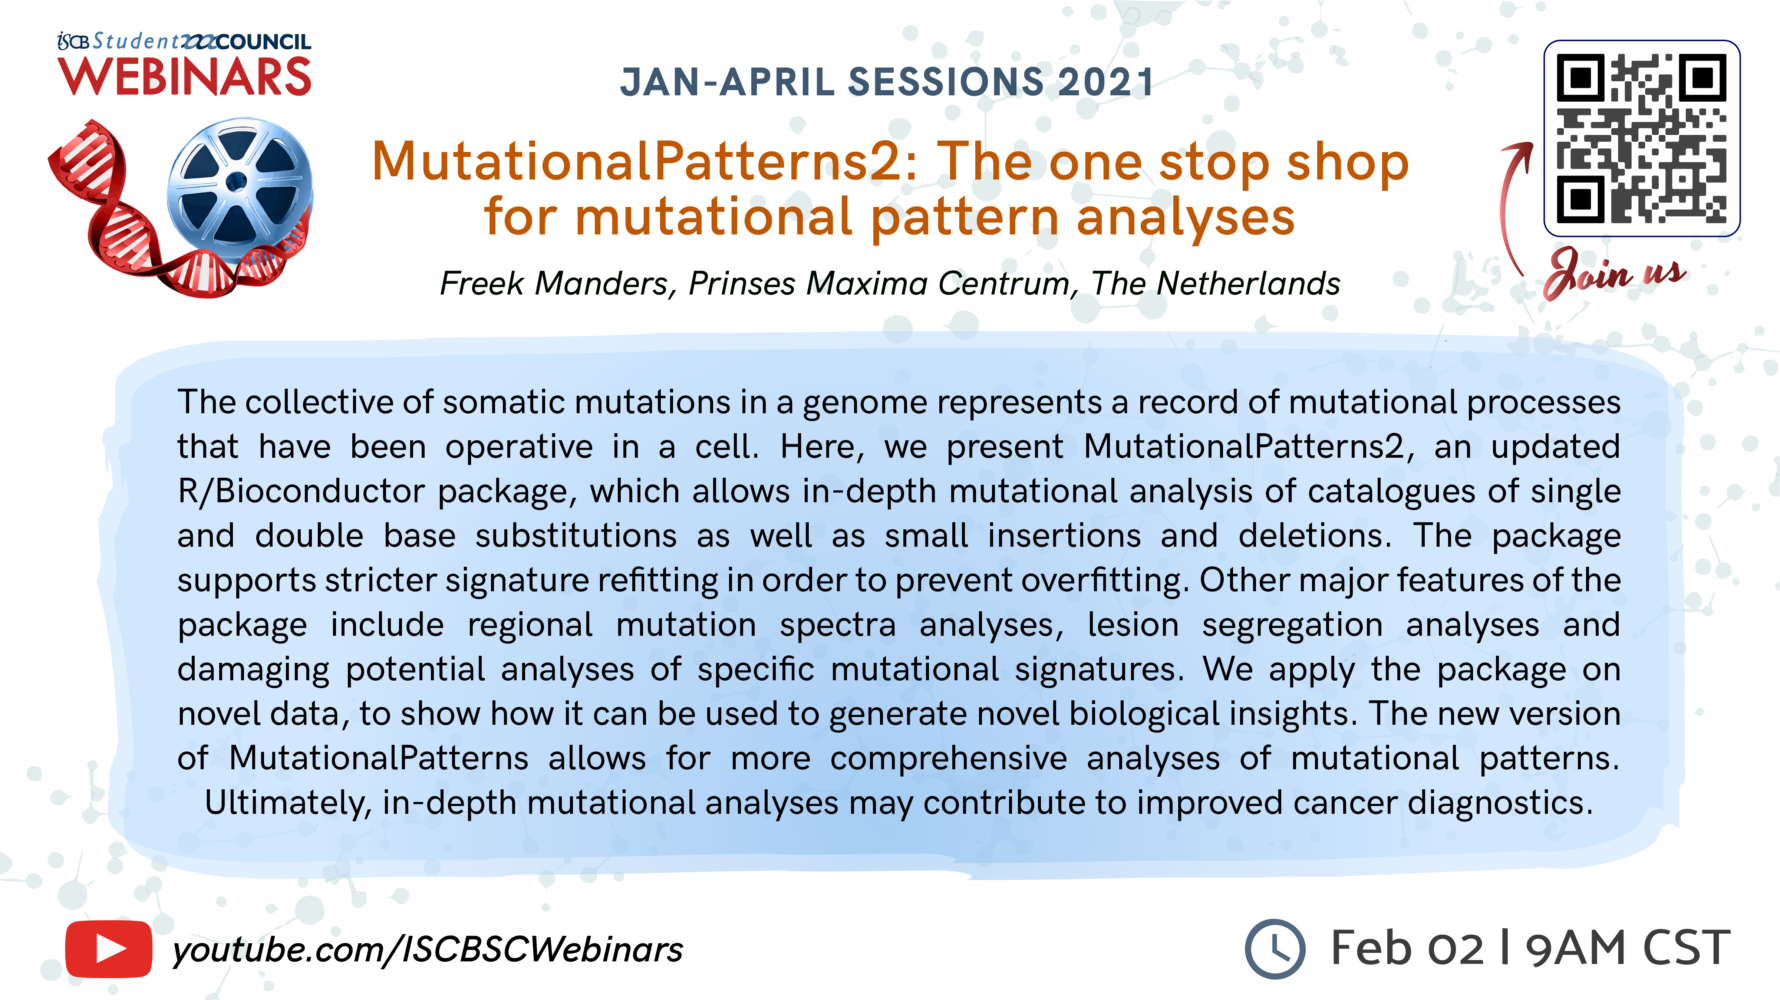 MutationalPatterns2: The one stop shop for mutational pattern analyses